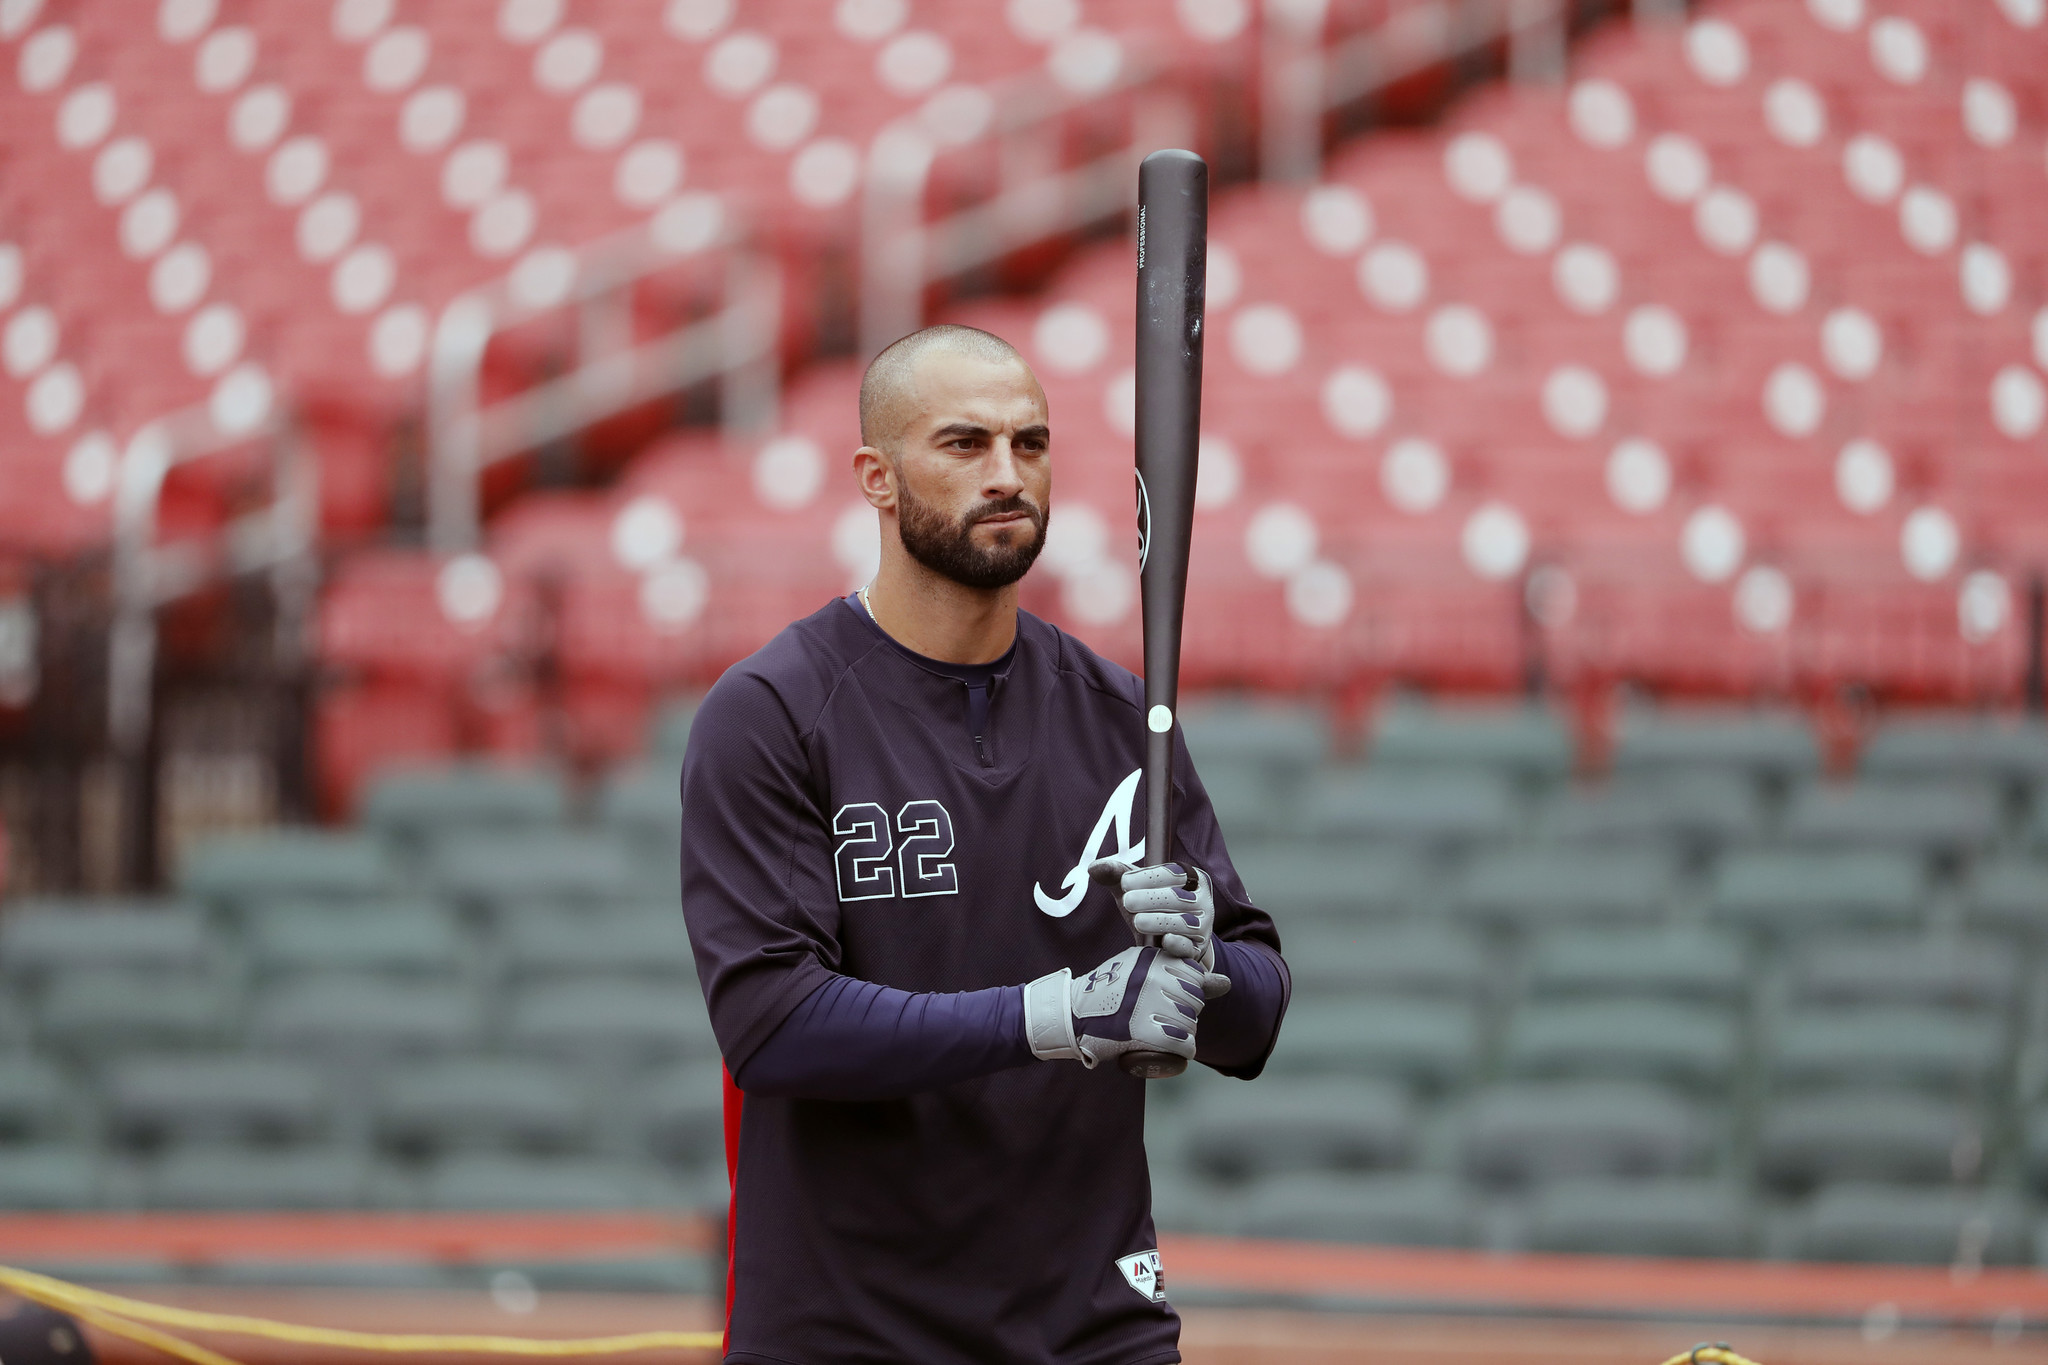 Braves' Nick Markakis: 'every single [Astros player] needs a beating'